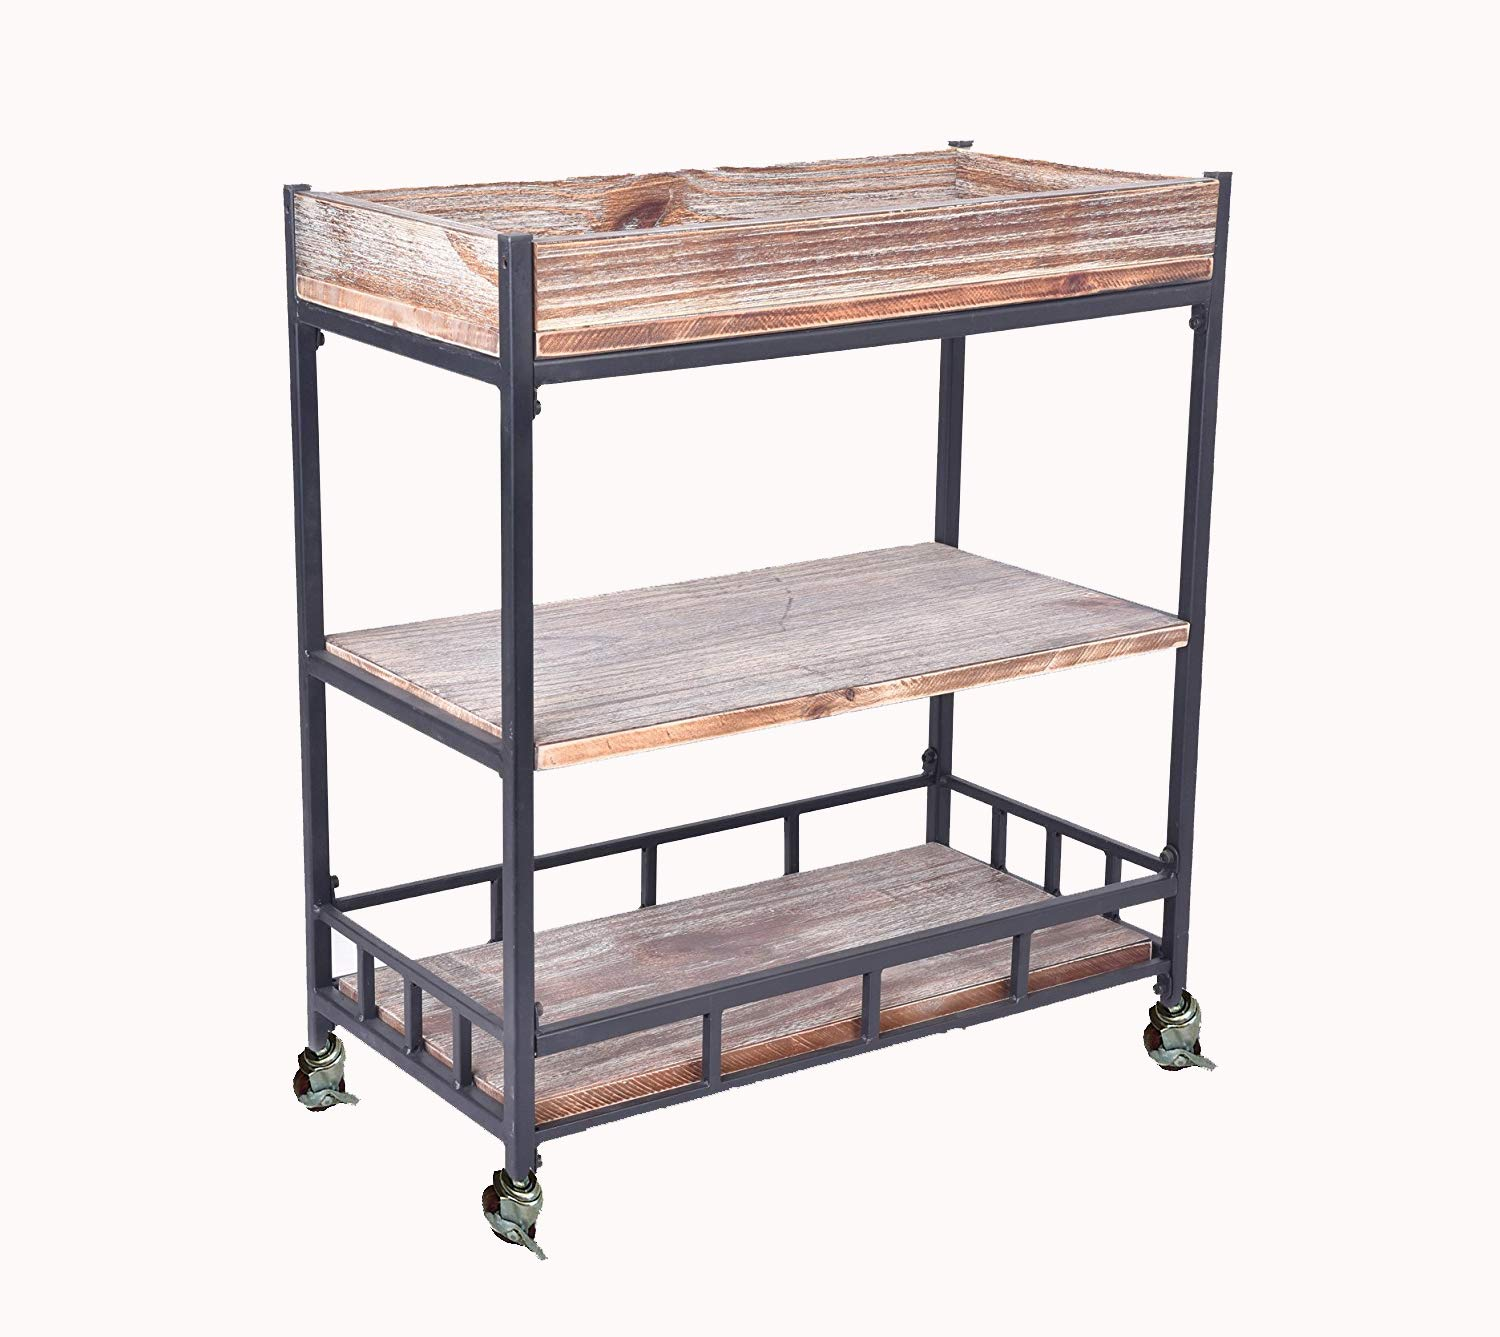 Diwhy Industrial Urban Wood Metal Wheels Storage Wine Beverage Rolling Wine Cart QUANZHOU AUTO FURNITURE CO. LTD